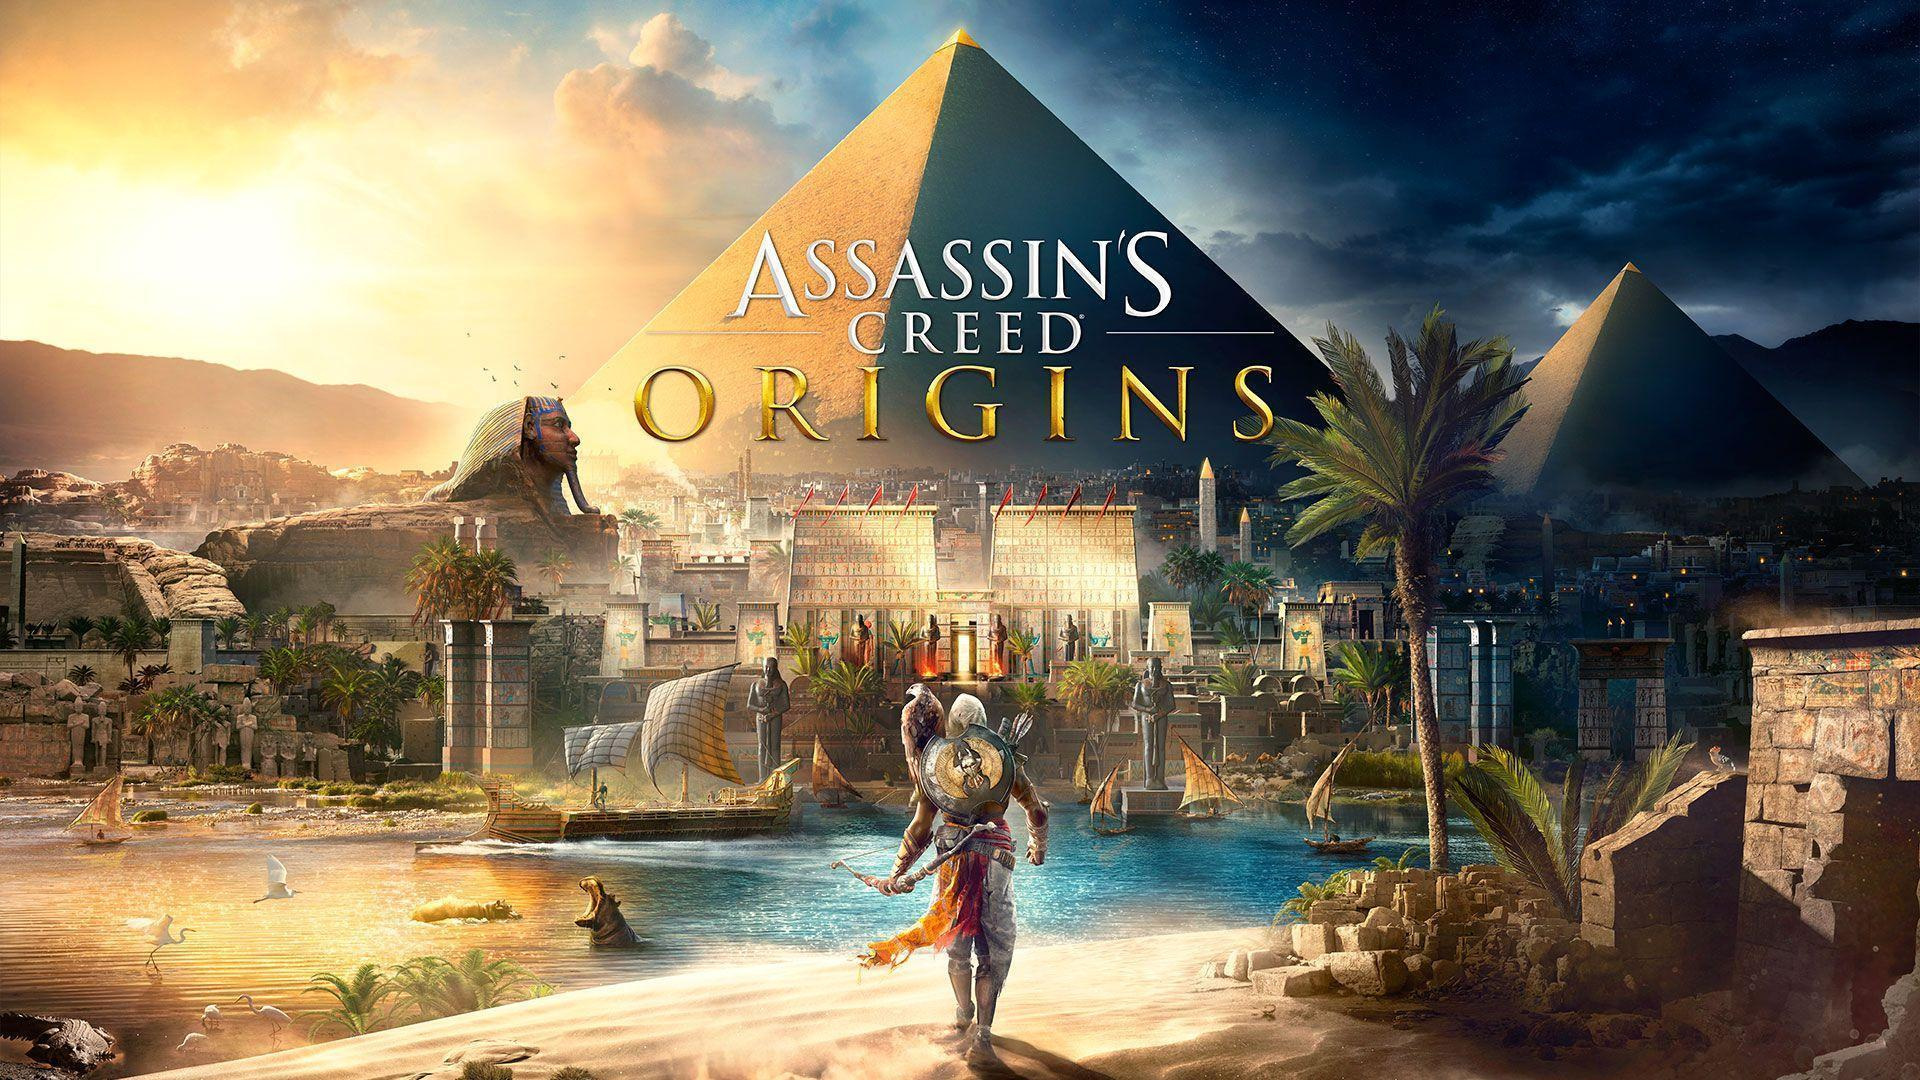 Assassin's Creed Origins on Xbox One, PS4, PC